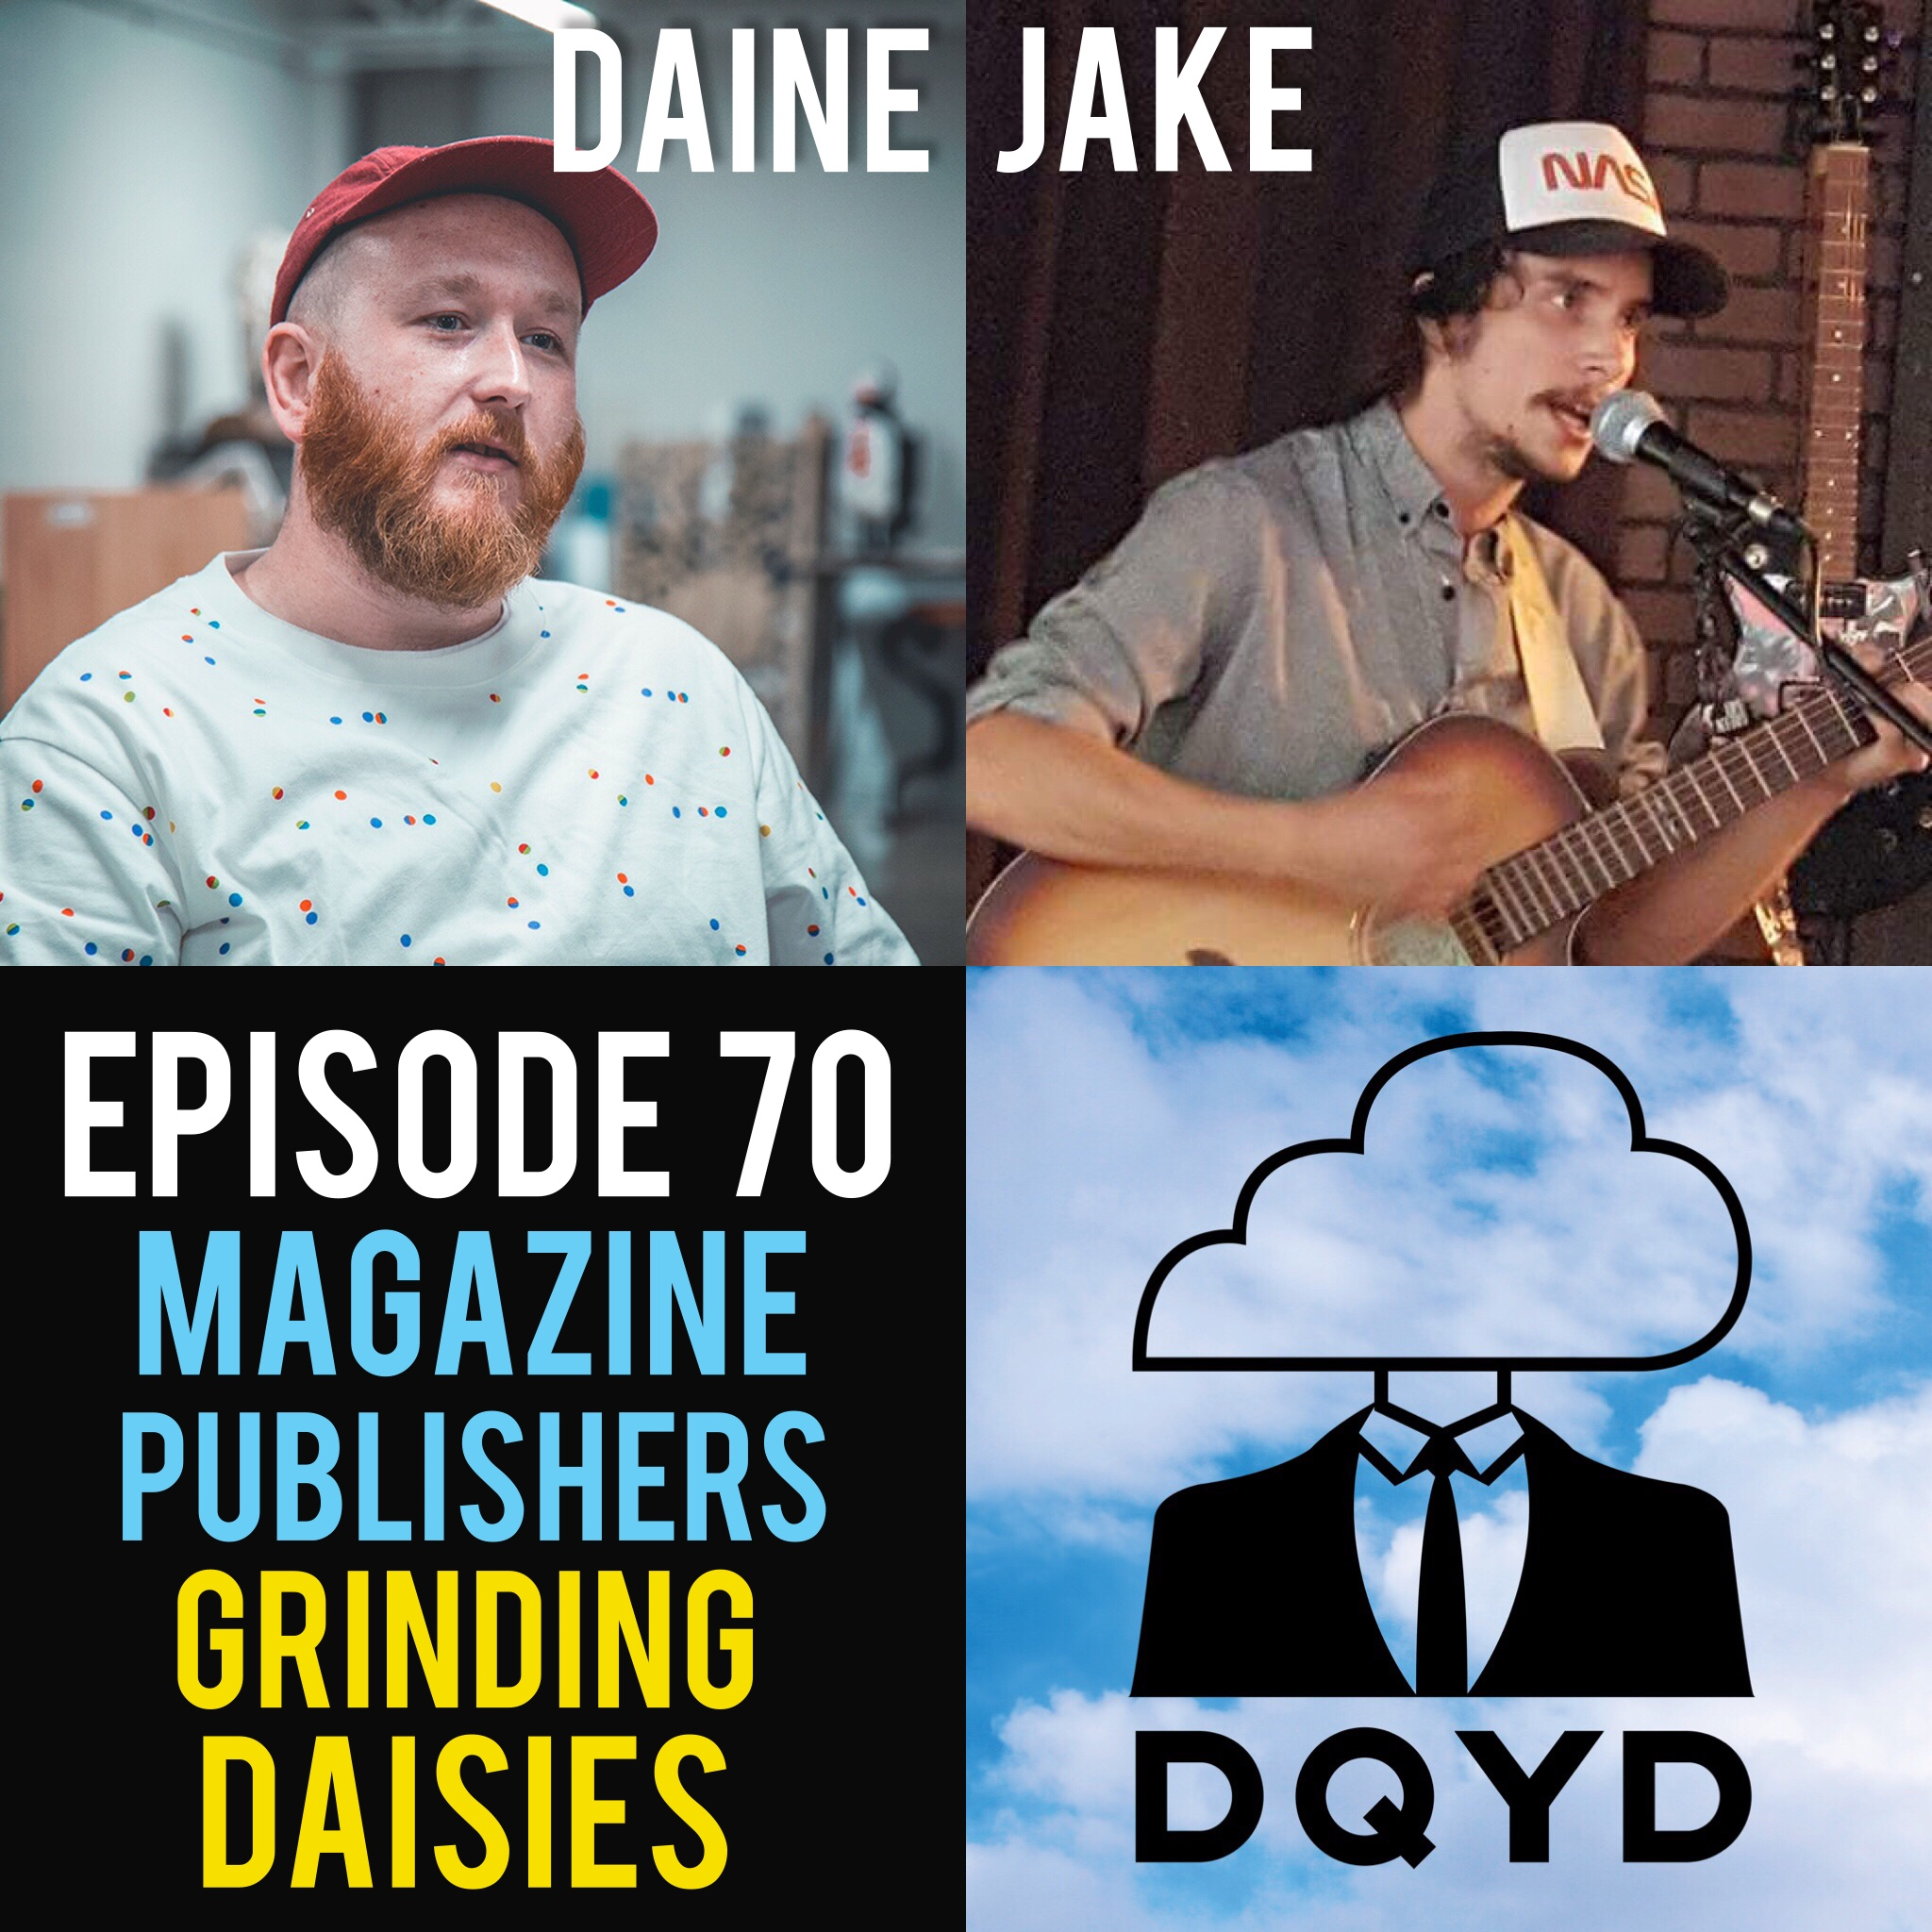 "Episode 70 with Magazine Publishers: Daine Goolsby and Jake Bethel of Grinding Daisies! Daine and Jake join us to discuss the love, passion and hard work behind their new magazine and how they prepare to bring tough issues to the forefront of conversation. Discussing art, religion, politics and social issues Grinding Daisies plans to serve as a platform for people to explain their viewpoint with others and solve differences by understanding. https://www.facebook.com/search/top/?q=grinding%20daisies  Song of the Week is ""Interlude"" by NeRo AnGeLo. Check him out! https://www.facebook.com/neezyangelic/"